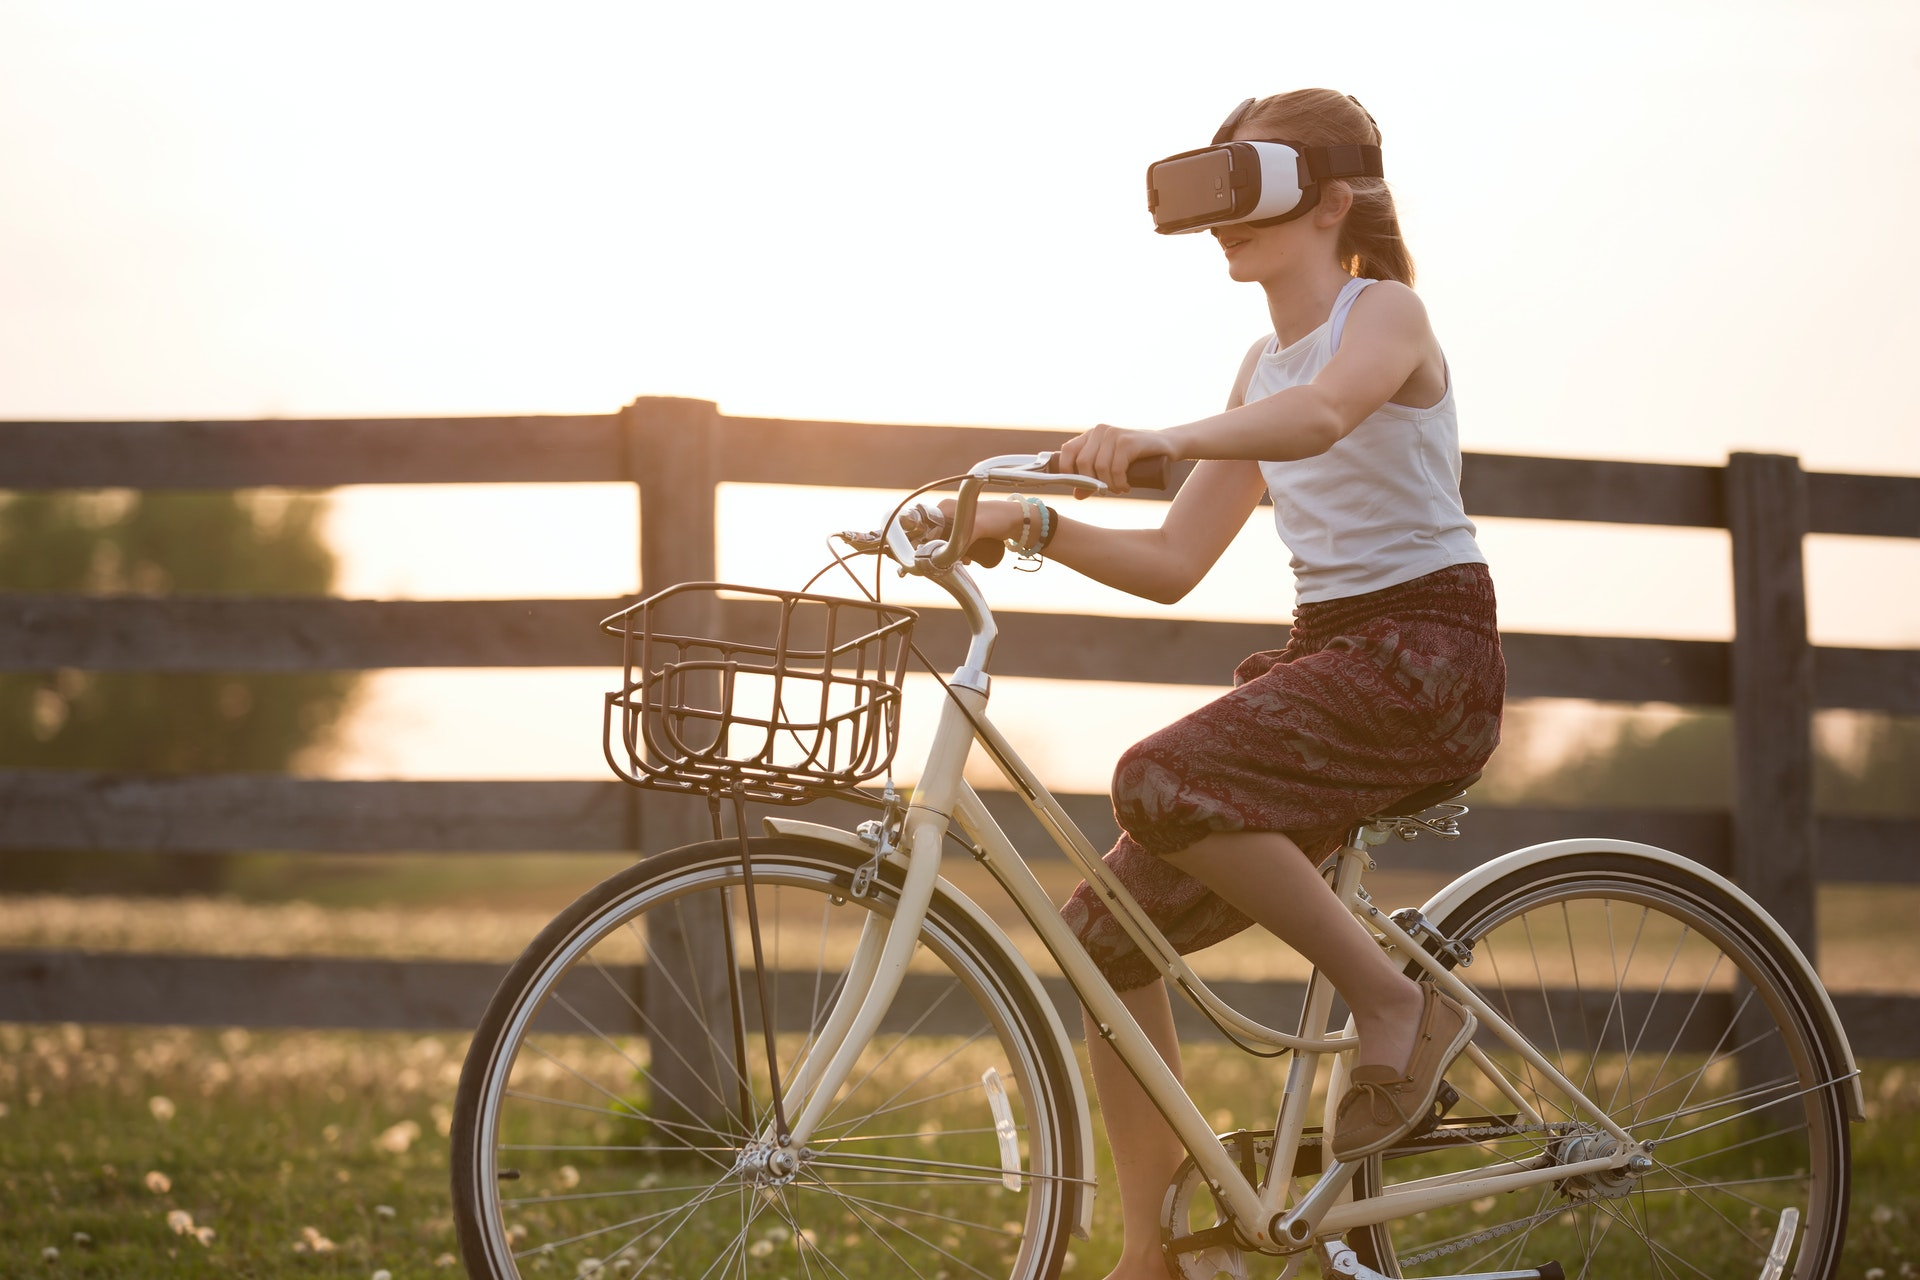 Real-World Applications Of Augmented Reality